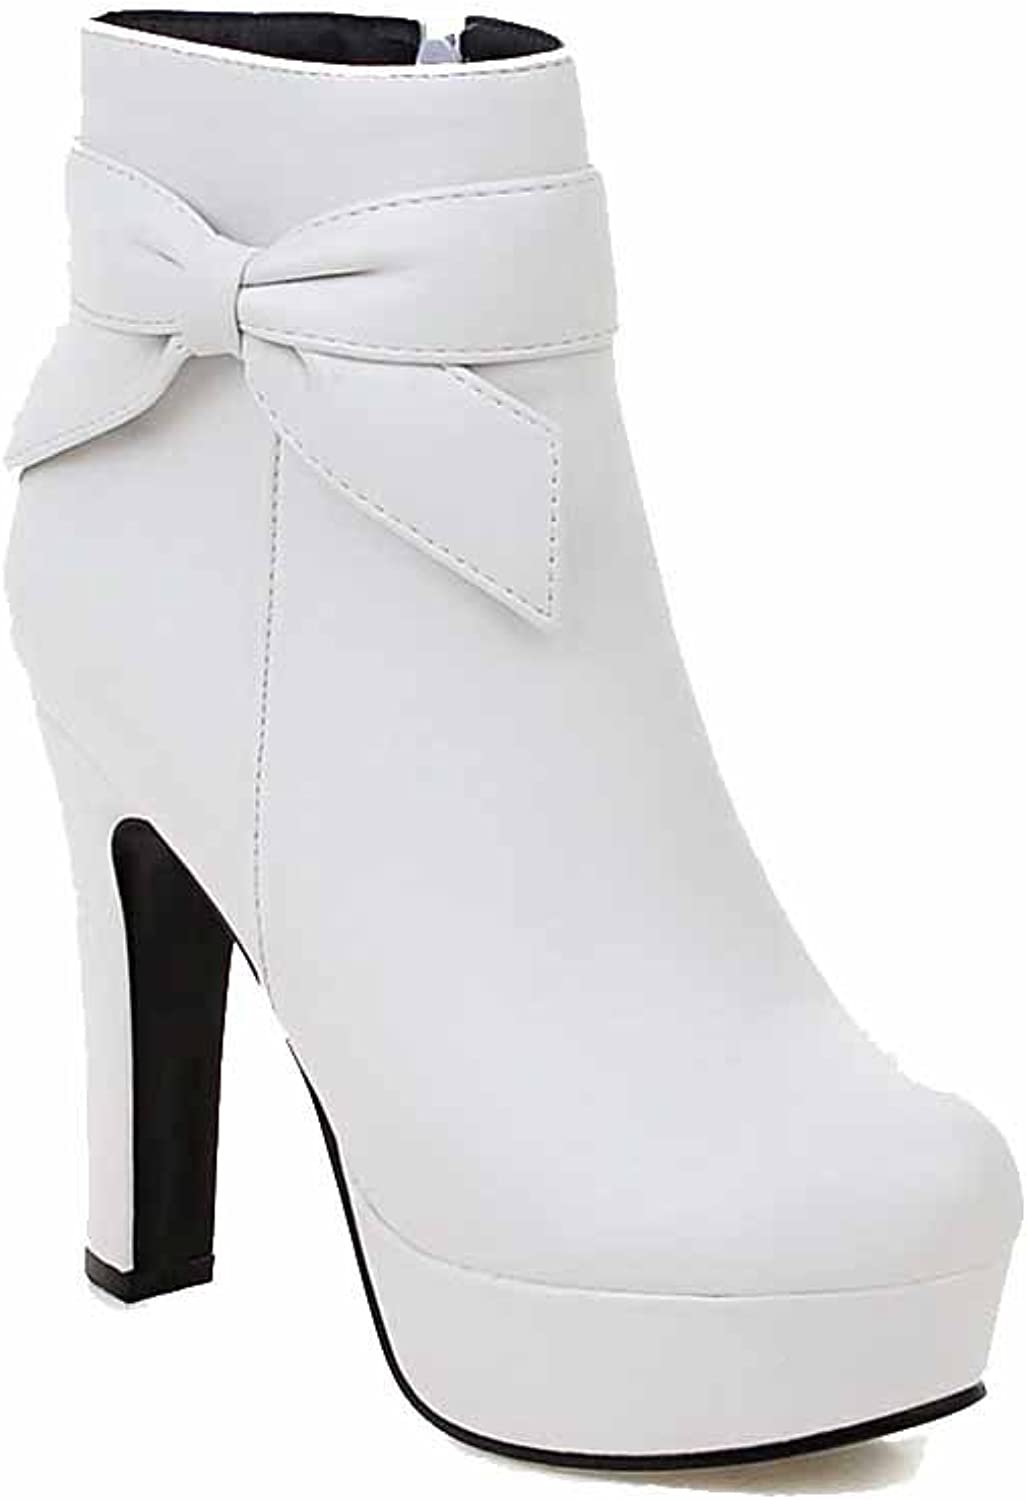 WeenFashion Women's Closed Round Toe Low-top High Heels Solid PU Boots